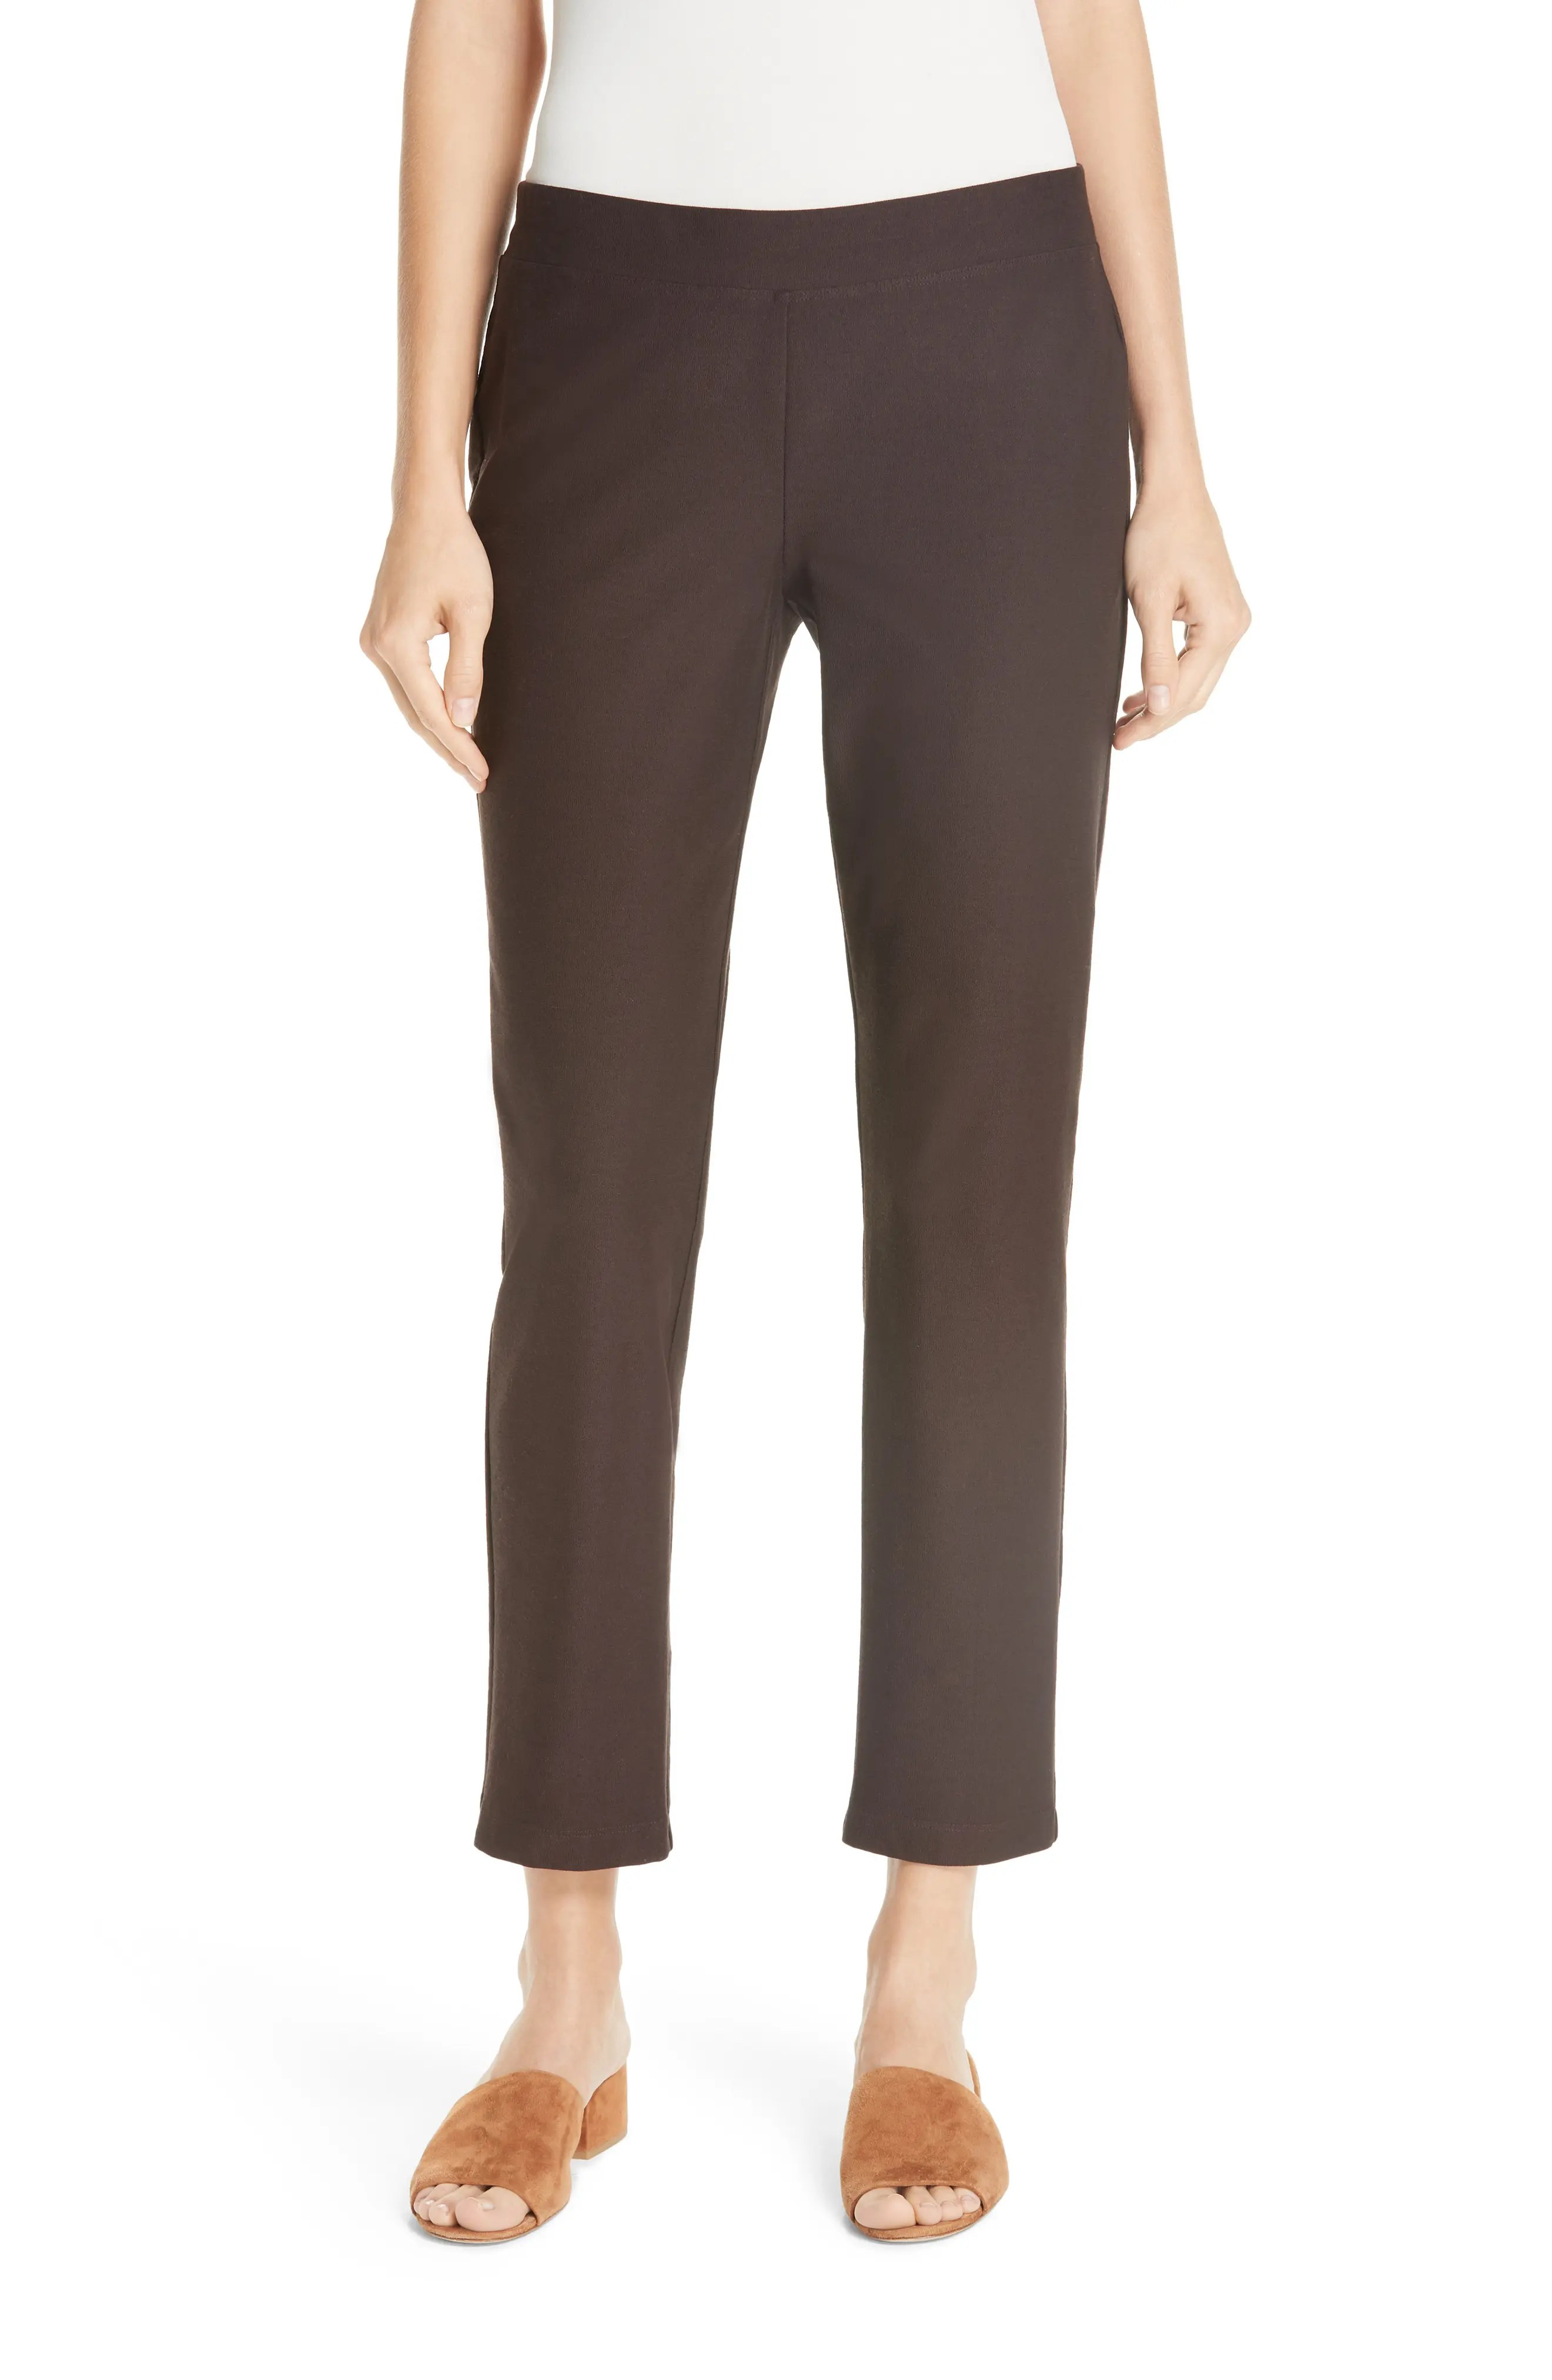 Eileen fisher stretch crepe slim ankle pants also women   petite clothing nordstrom rh shoprdstrom